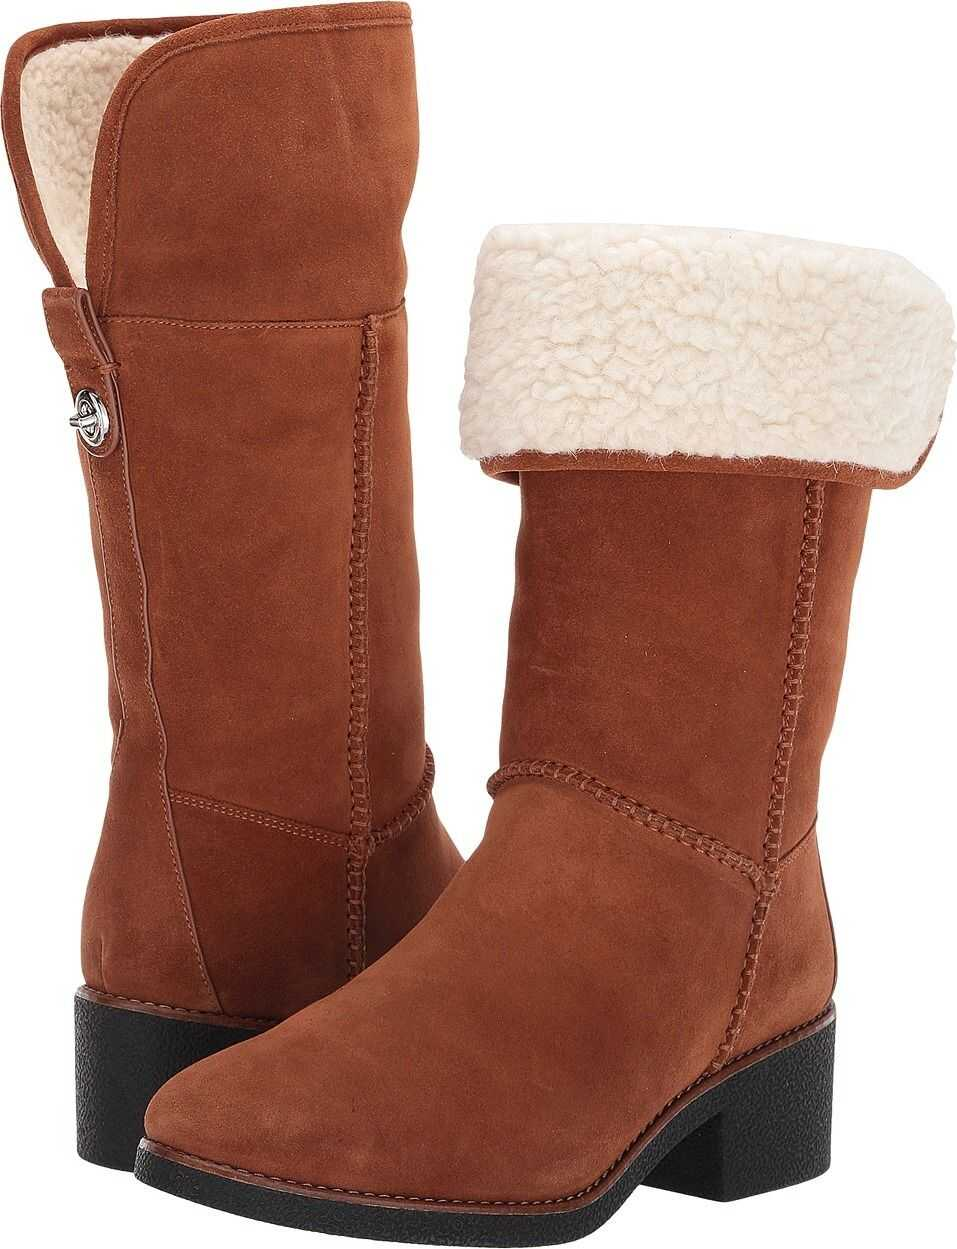 COACH Turnlock Faux Shearling Boot Saddle